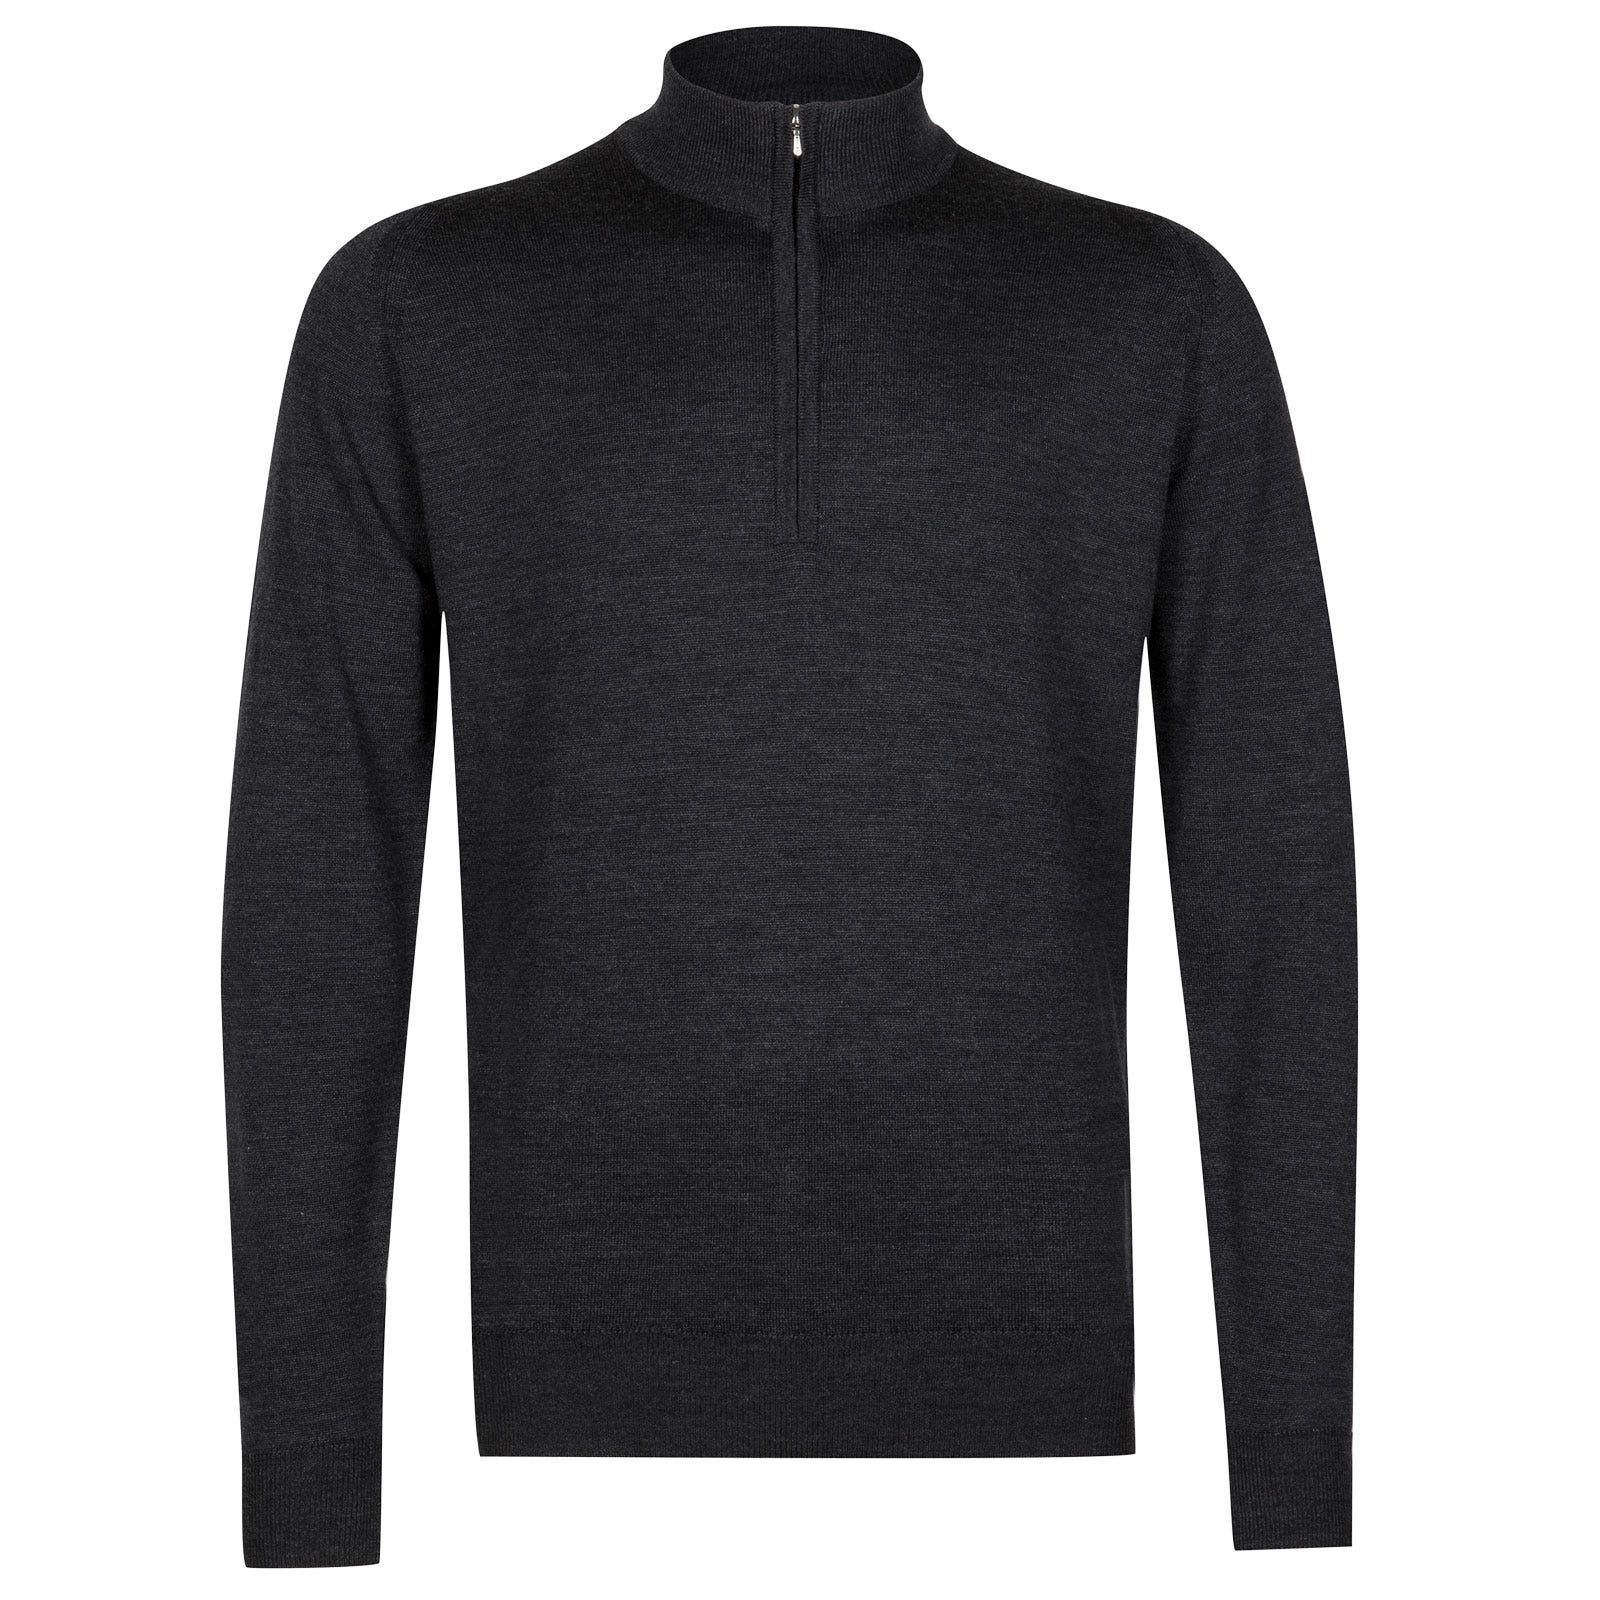 John Smedley tapton Merino Wool Pullover in Charcoal-S